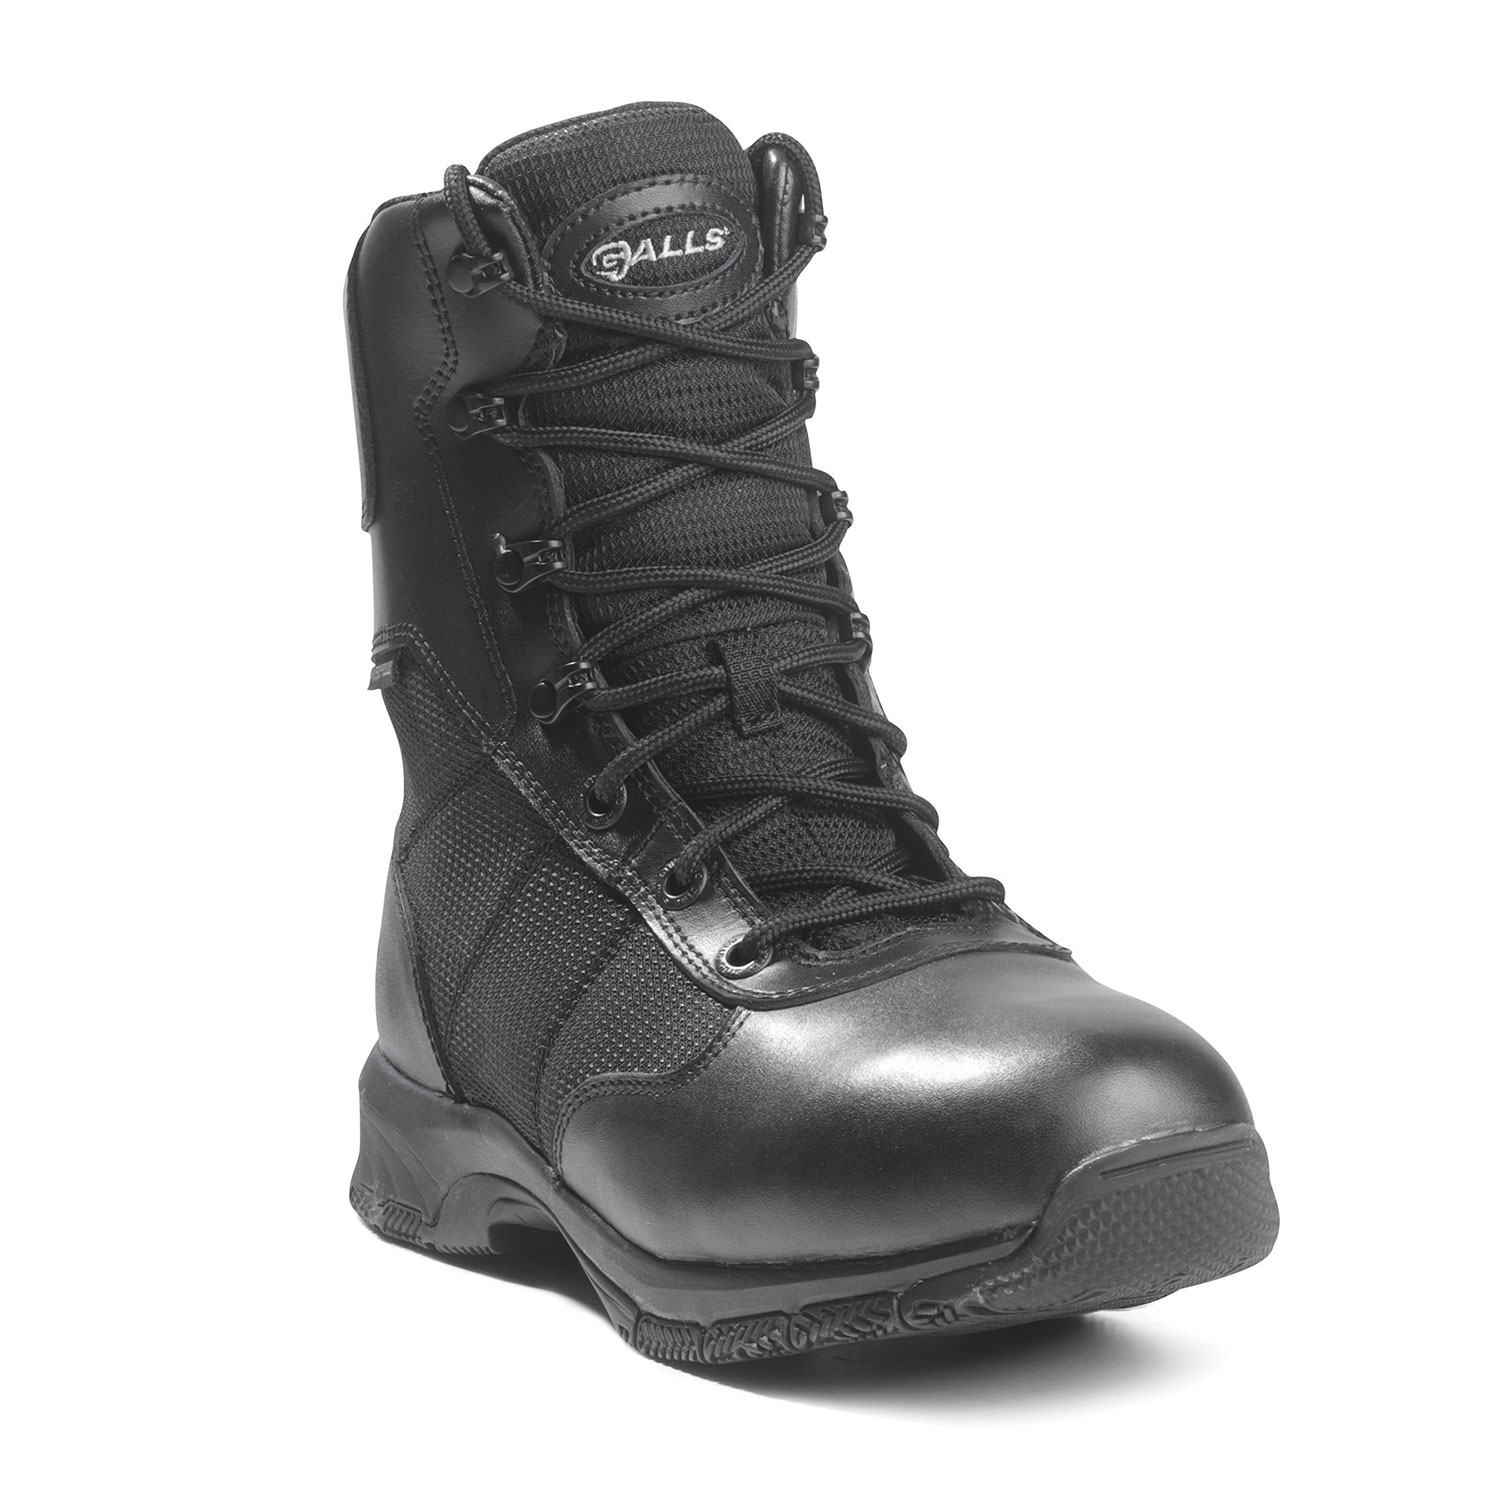 Galls G-TAC Athletic 8 inch SZ WP Boot with Polishable Toe